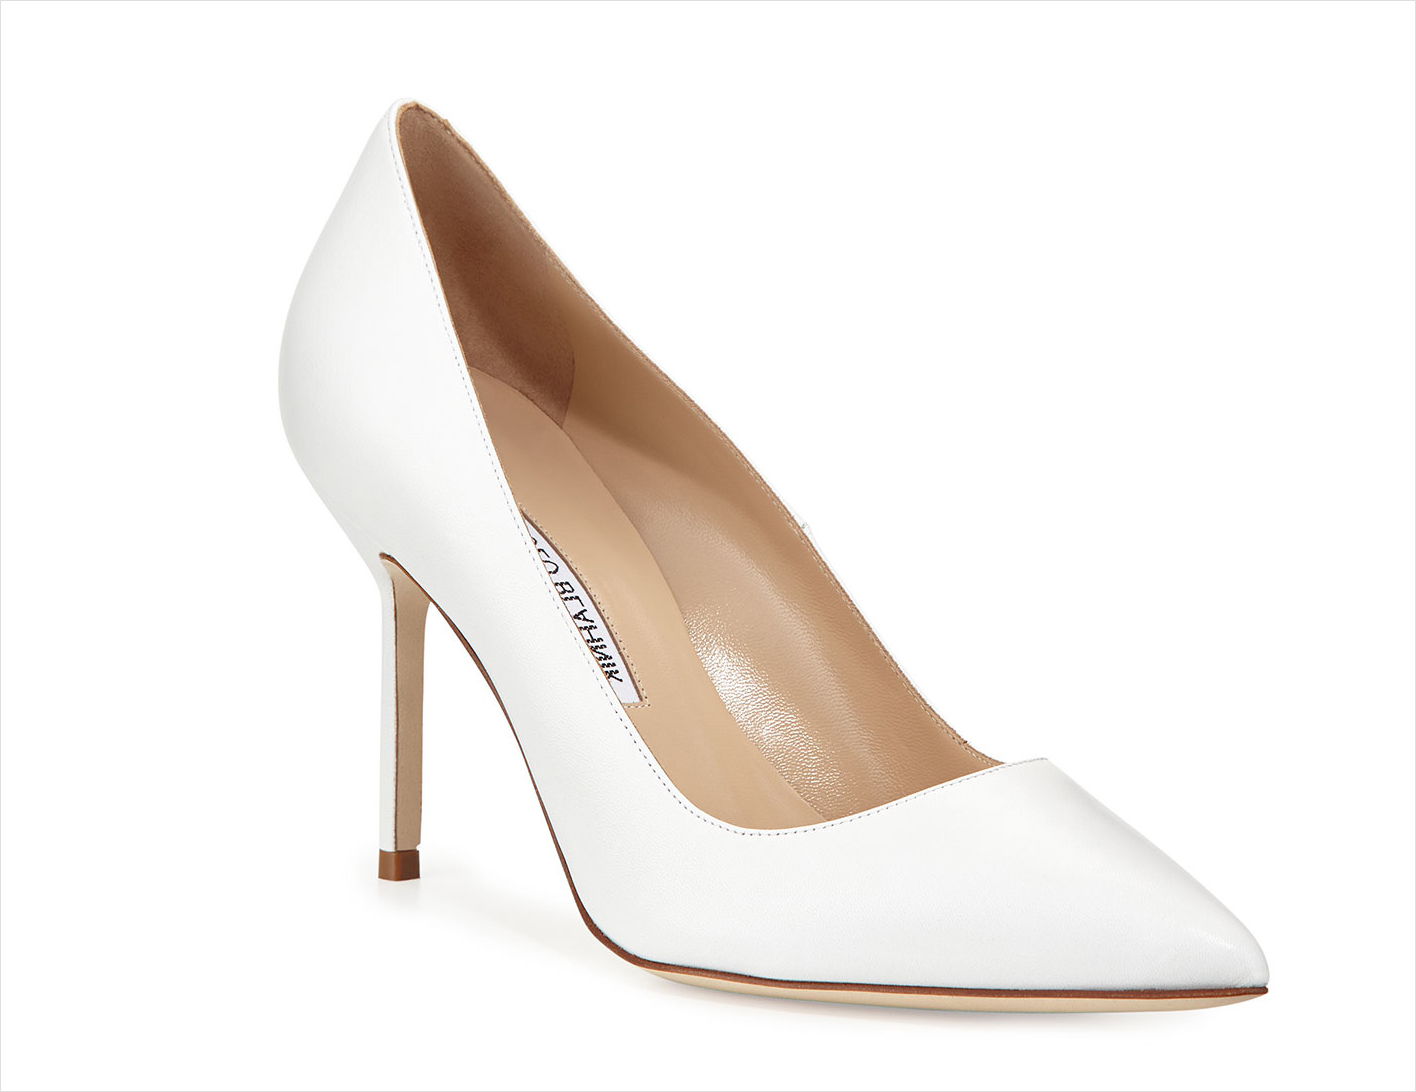 Nordstrom BB pointed toe pump Manolo Blahnik white wedding heels shoes